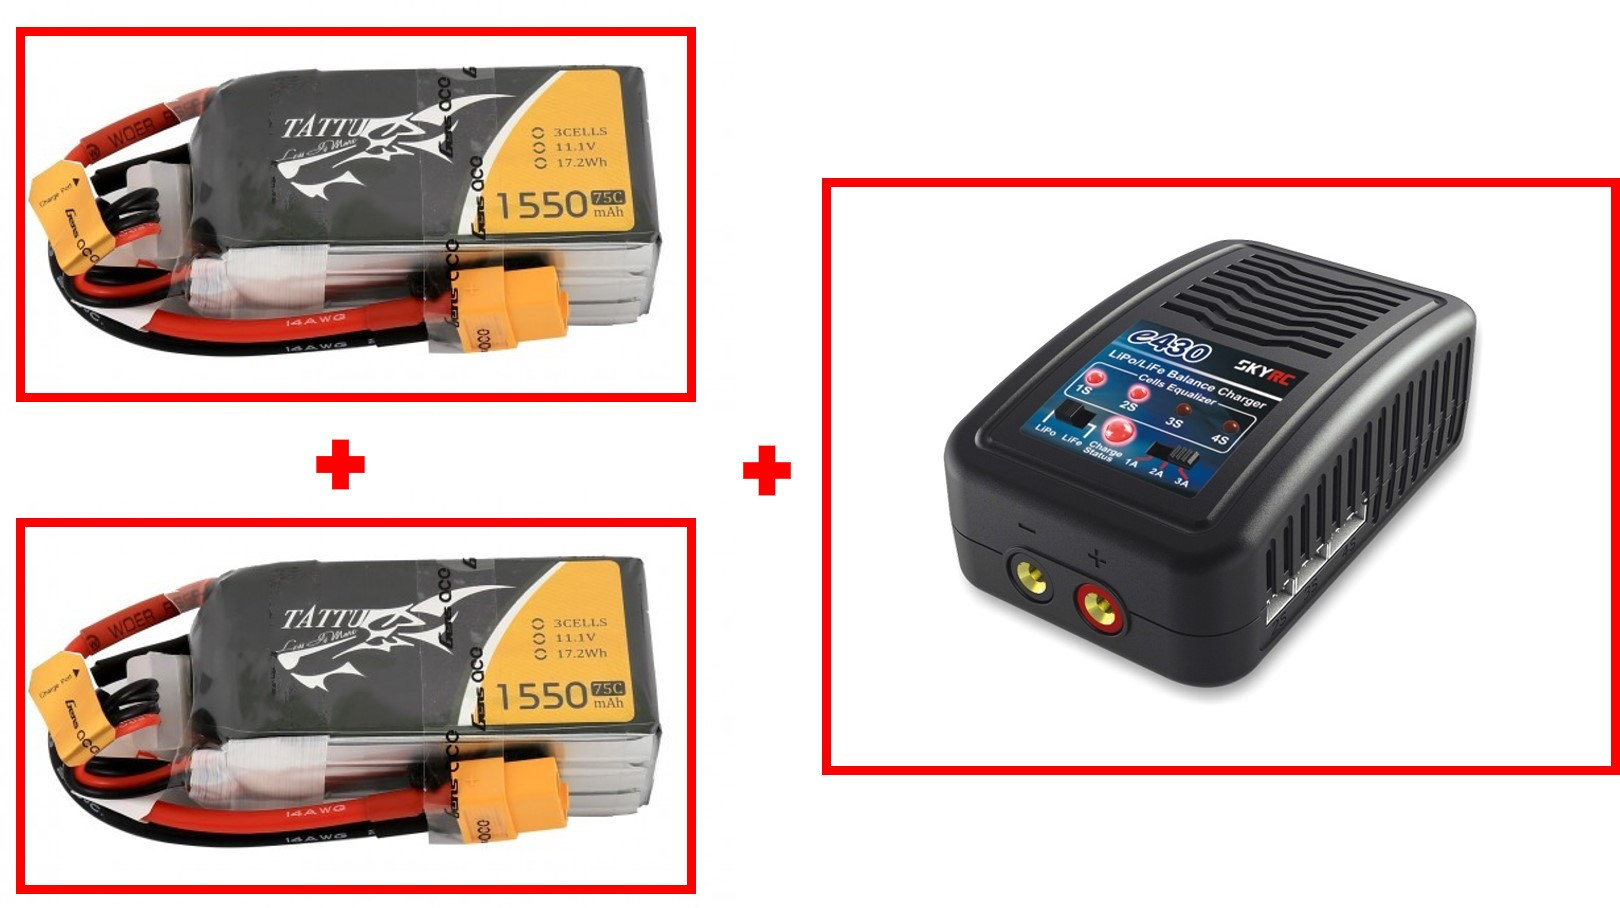 1550mah-75c-3s-lipo-battery-and-skyrc-e430-charger-kit.jpg